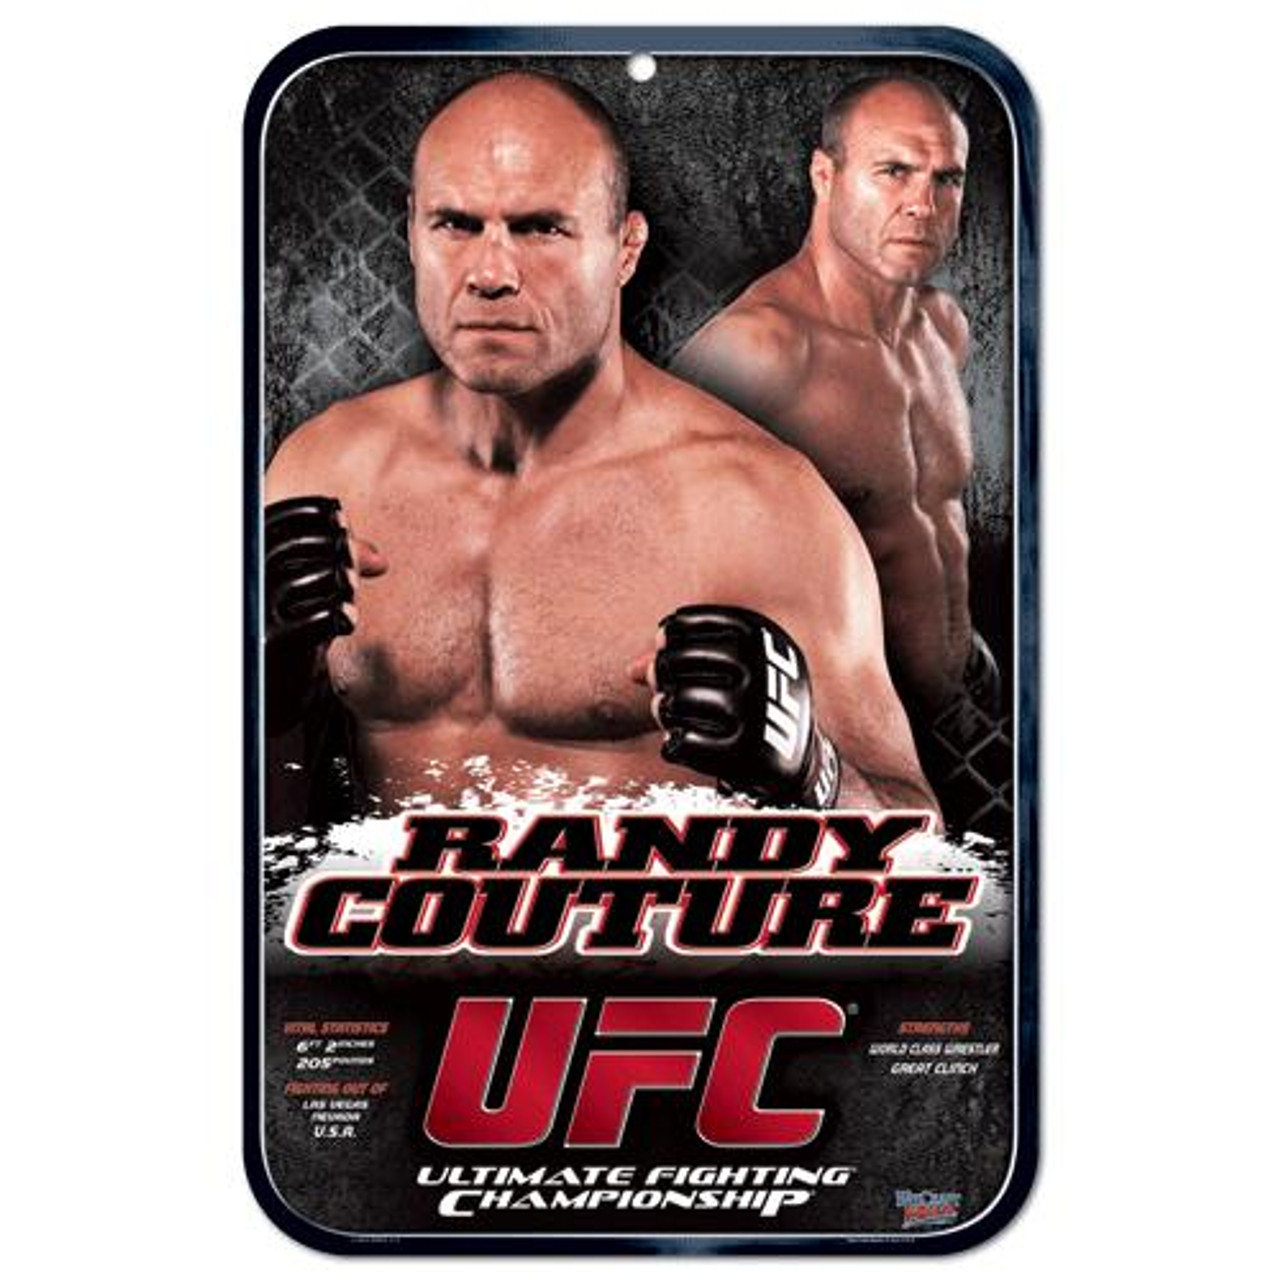 UFC Randy Couture Sign